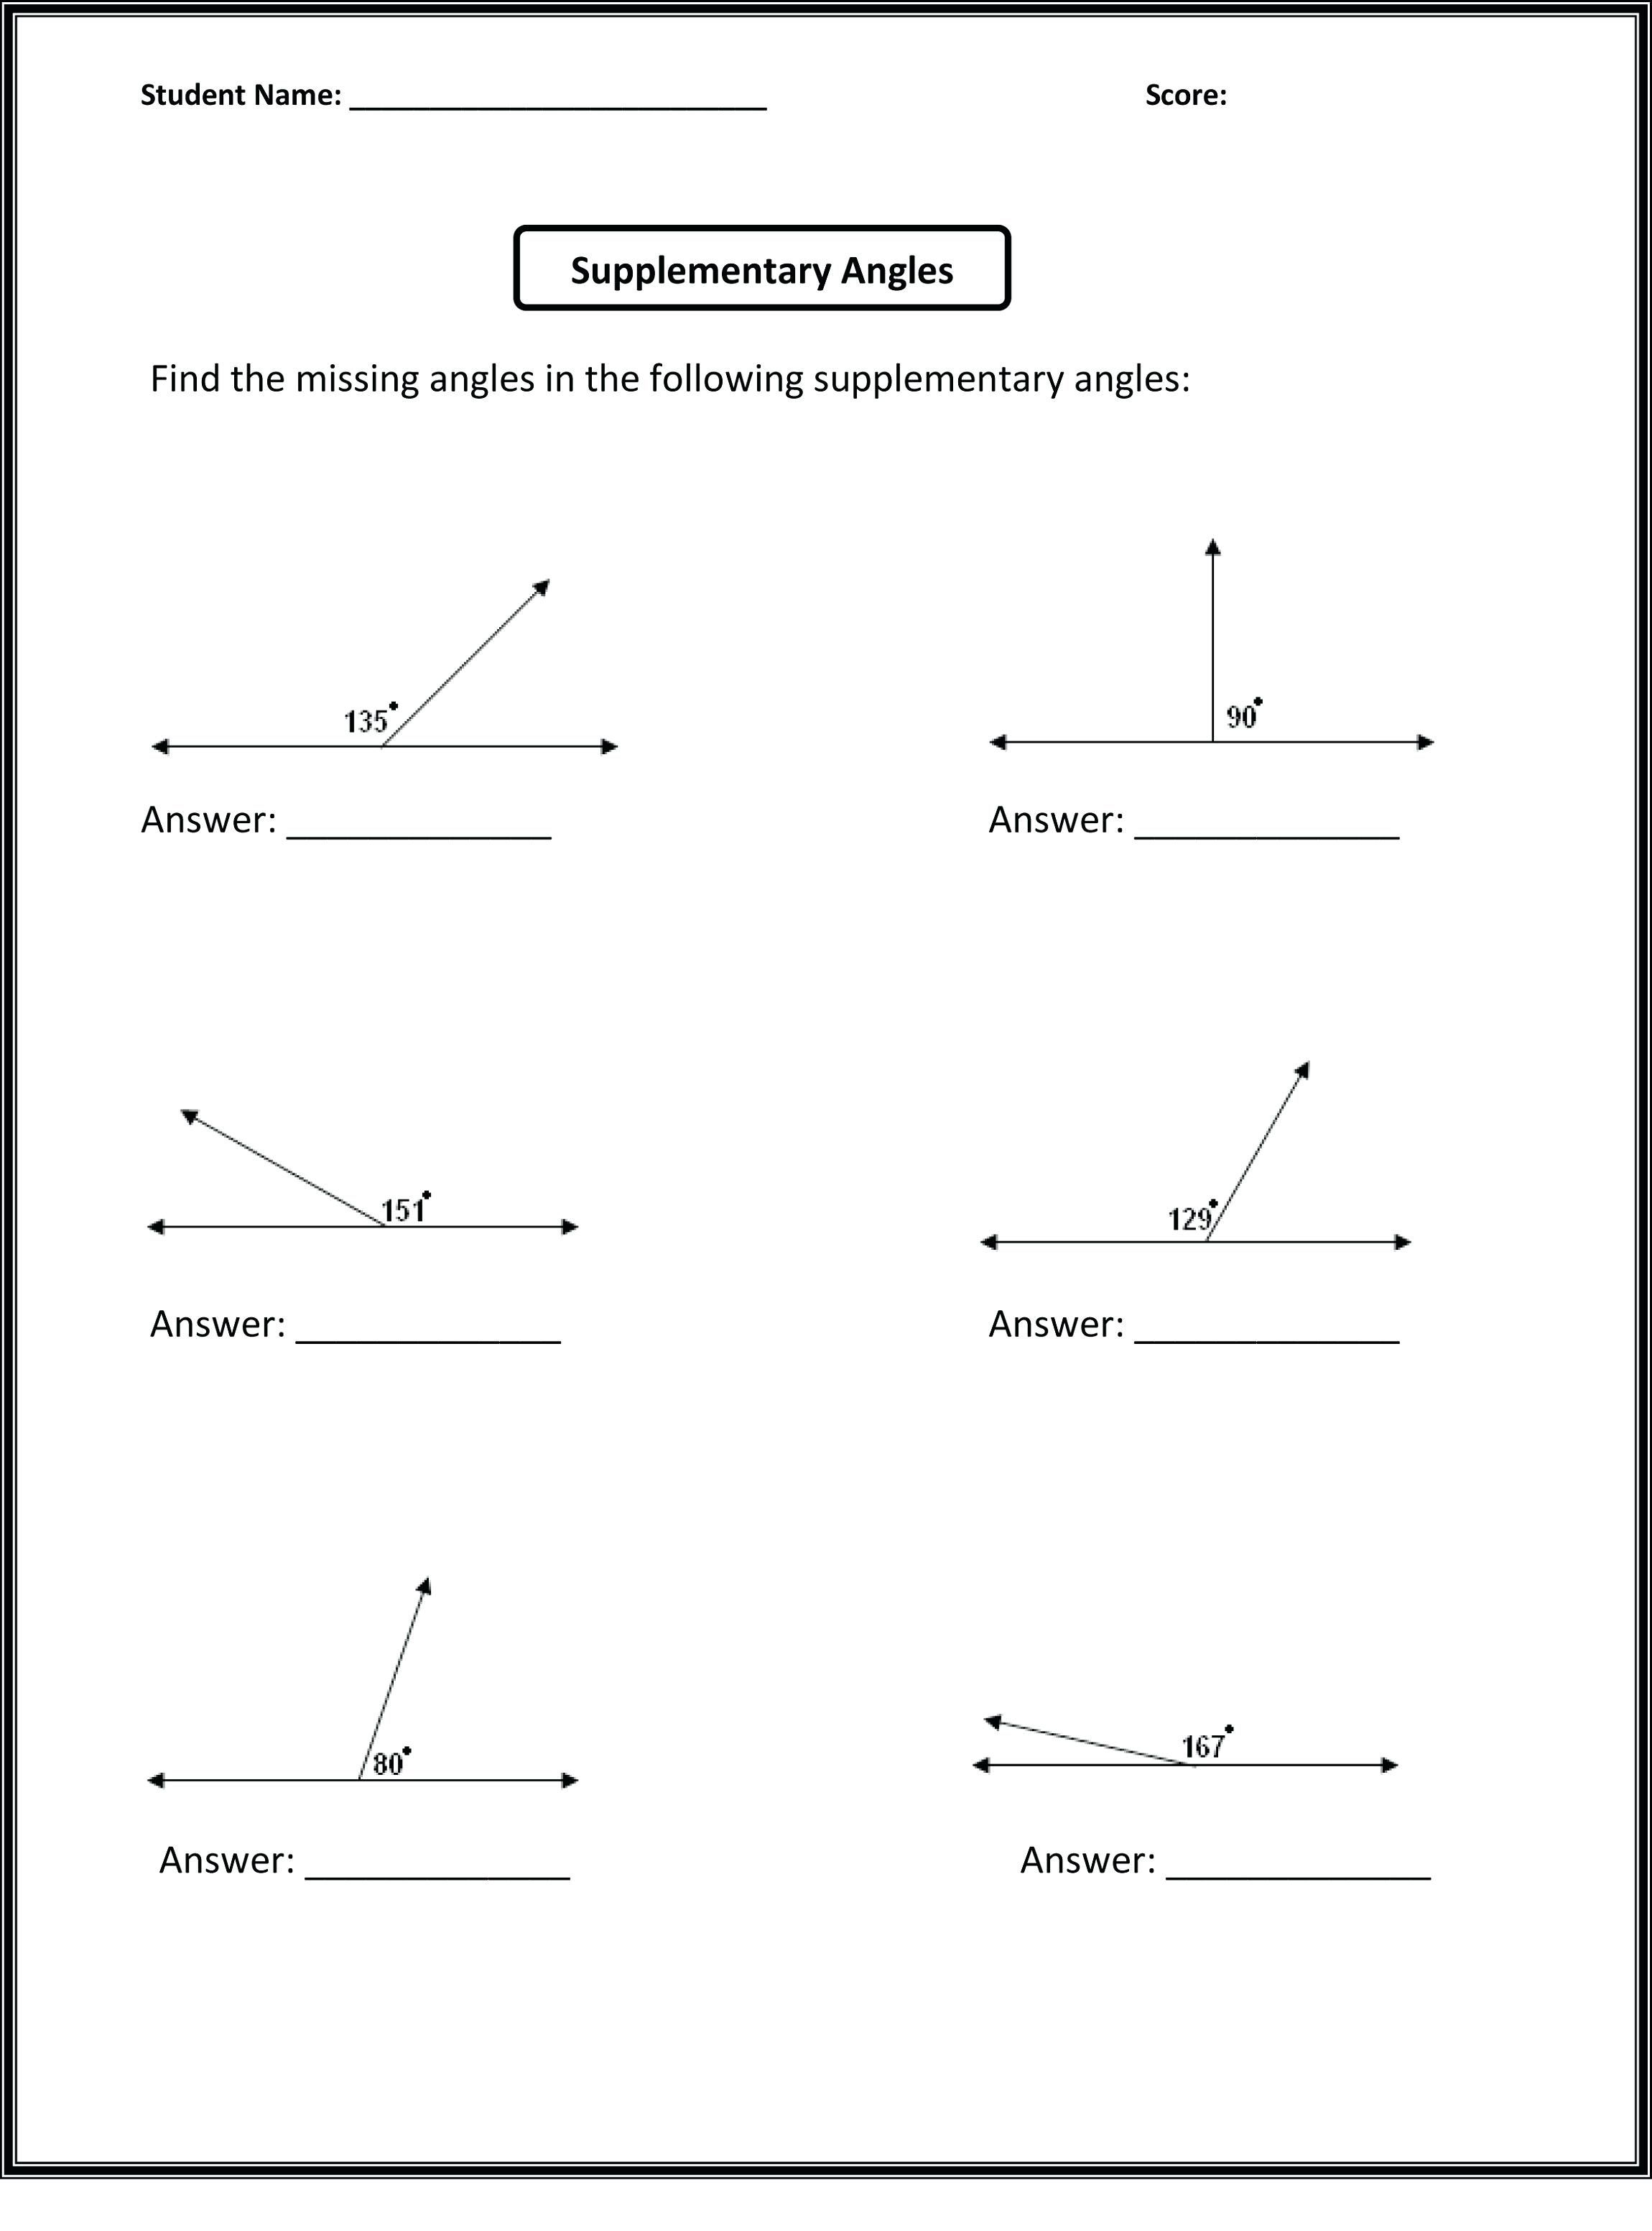 Angles Of Elevation And Depression Worksheet With Answers